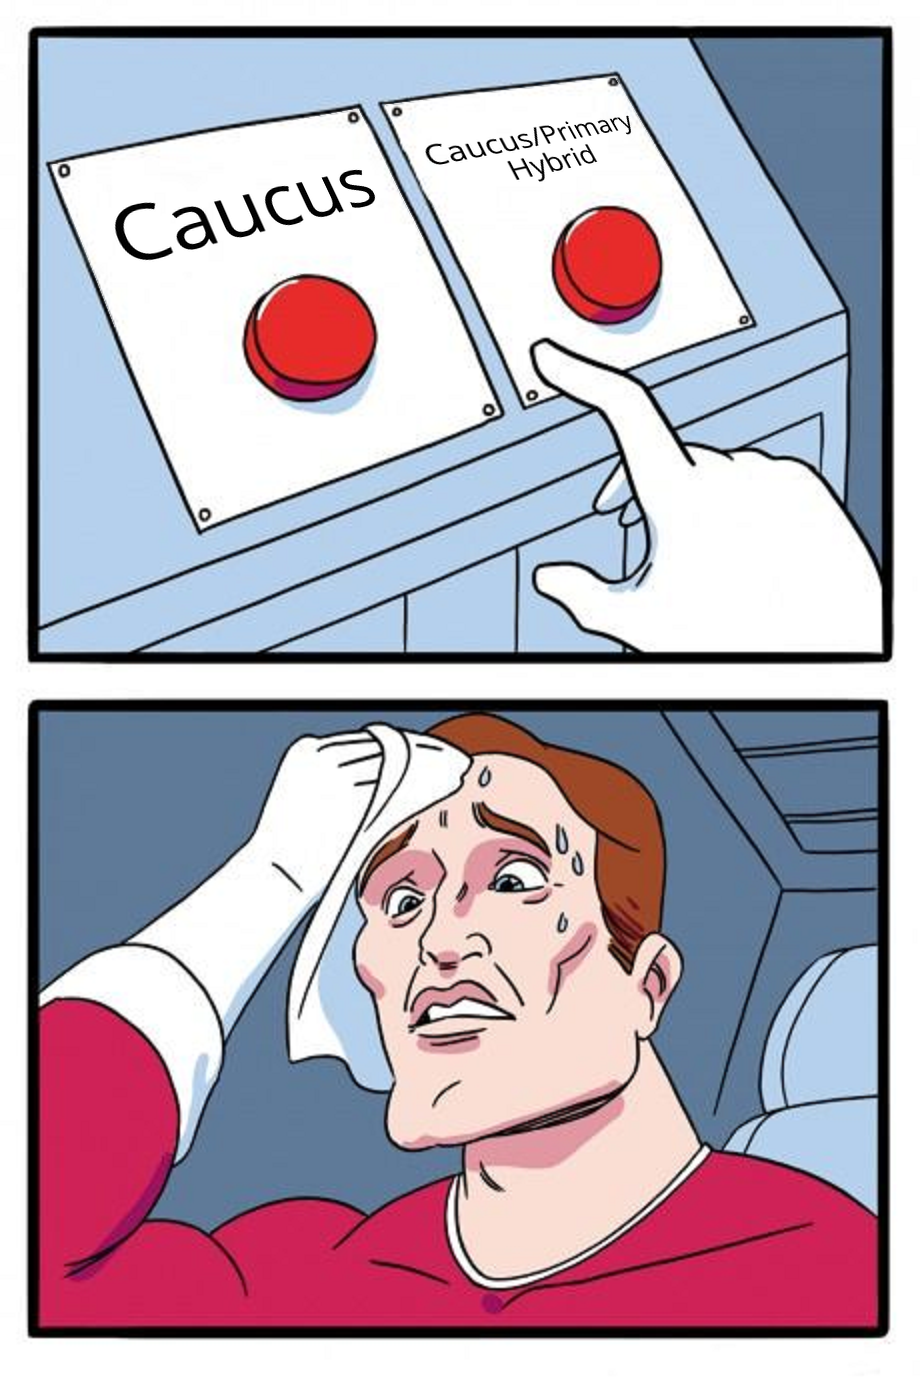 public/img/2019/caucus-primary-daily-struggle.png